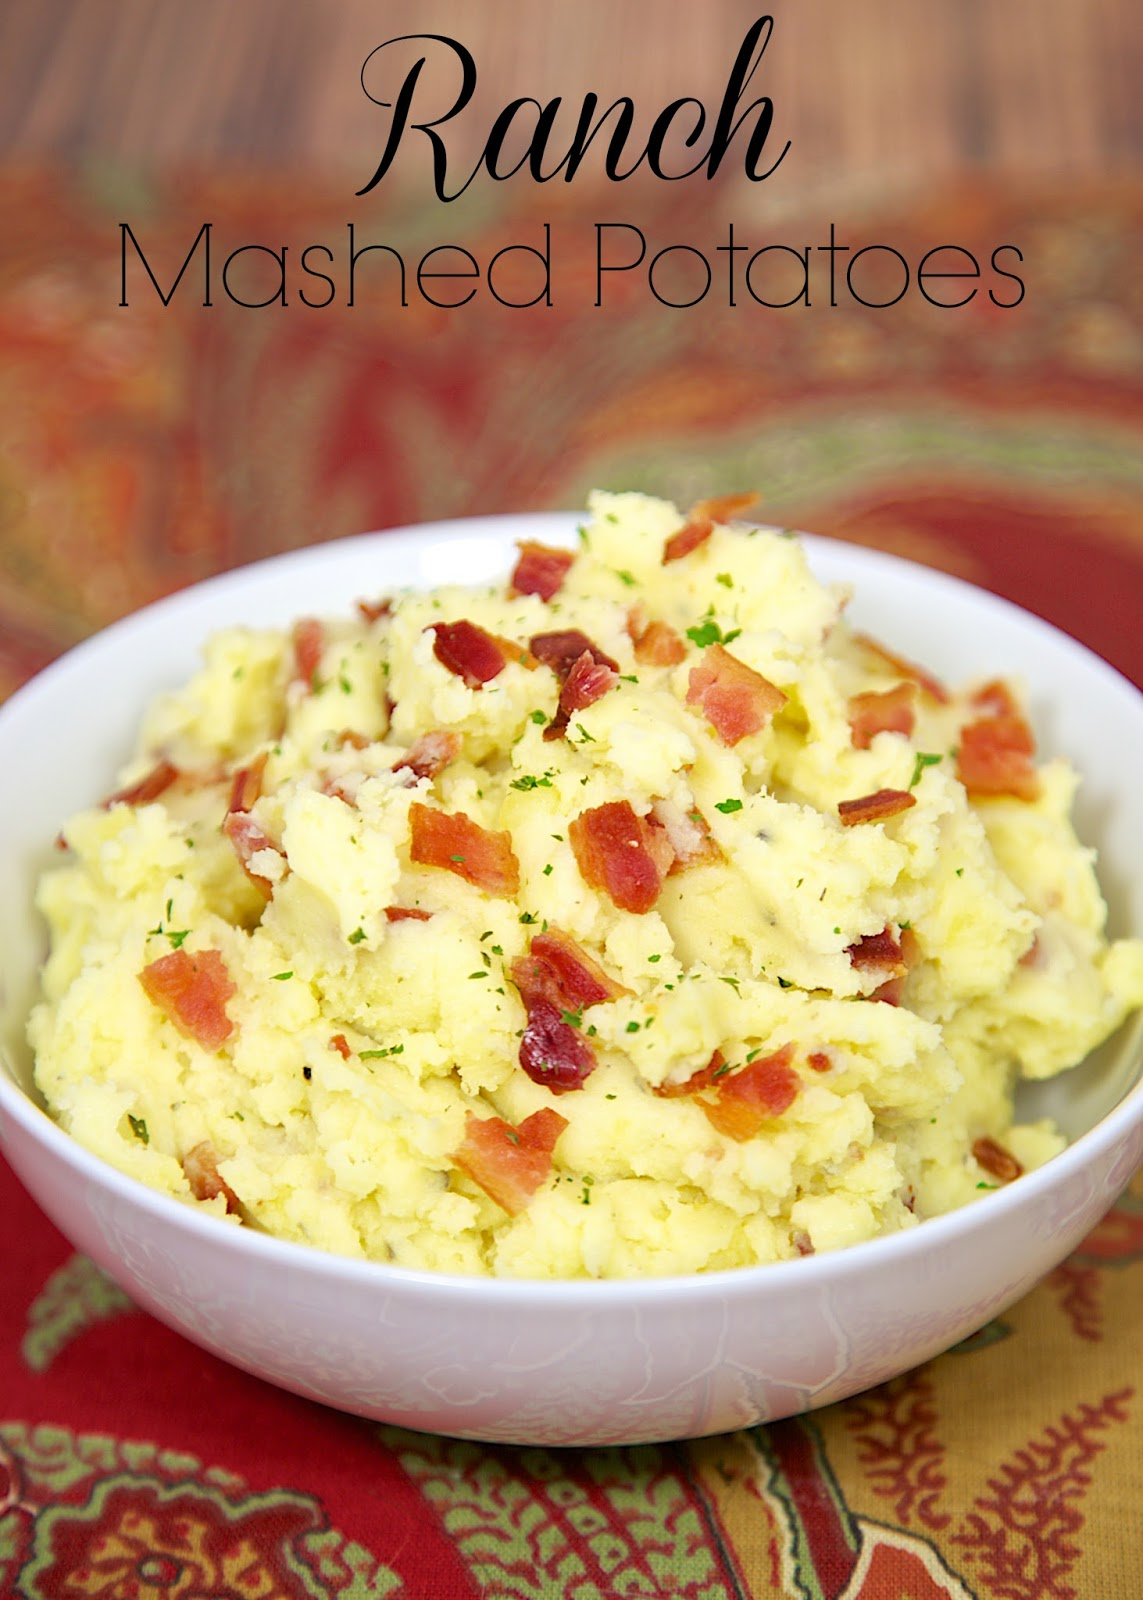 Ranch Mashed Potatoes - yukon gold potatoes, butter, Ranch dressing and bacon. Super quick side dish that packs tons of flavor!